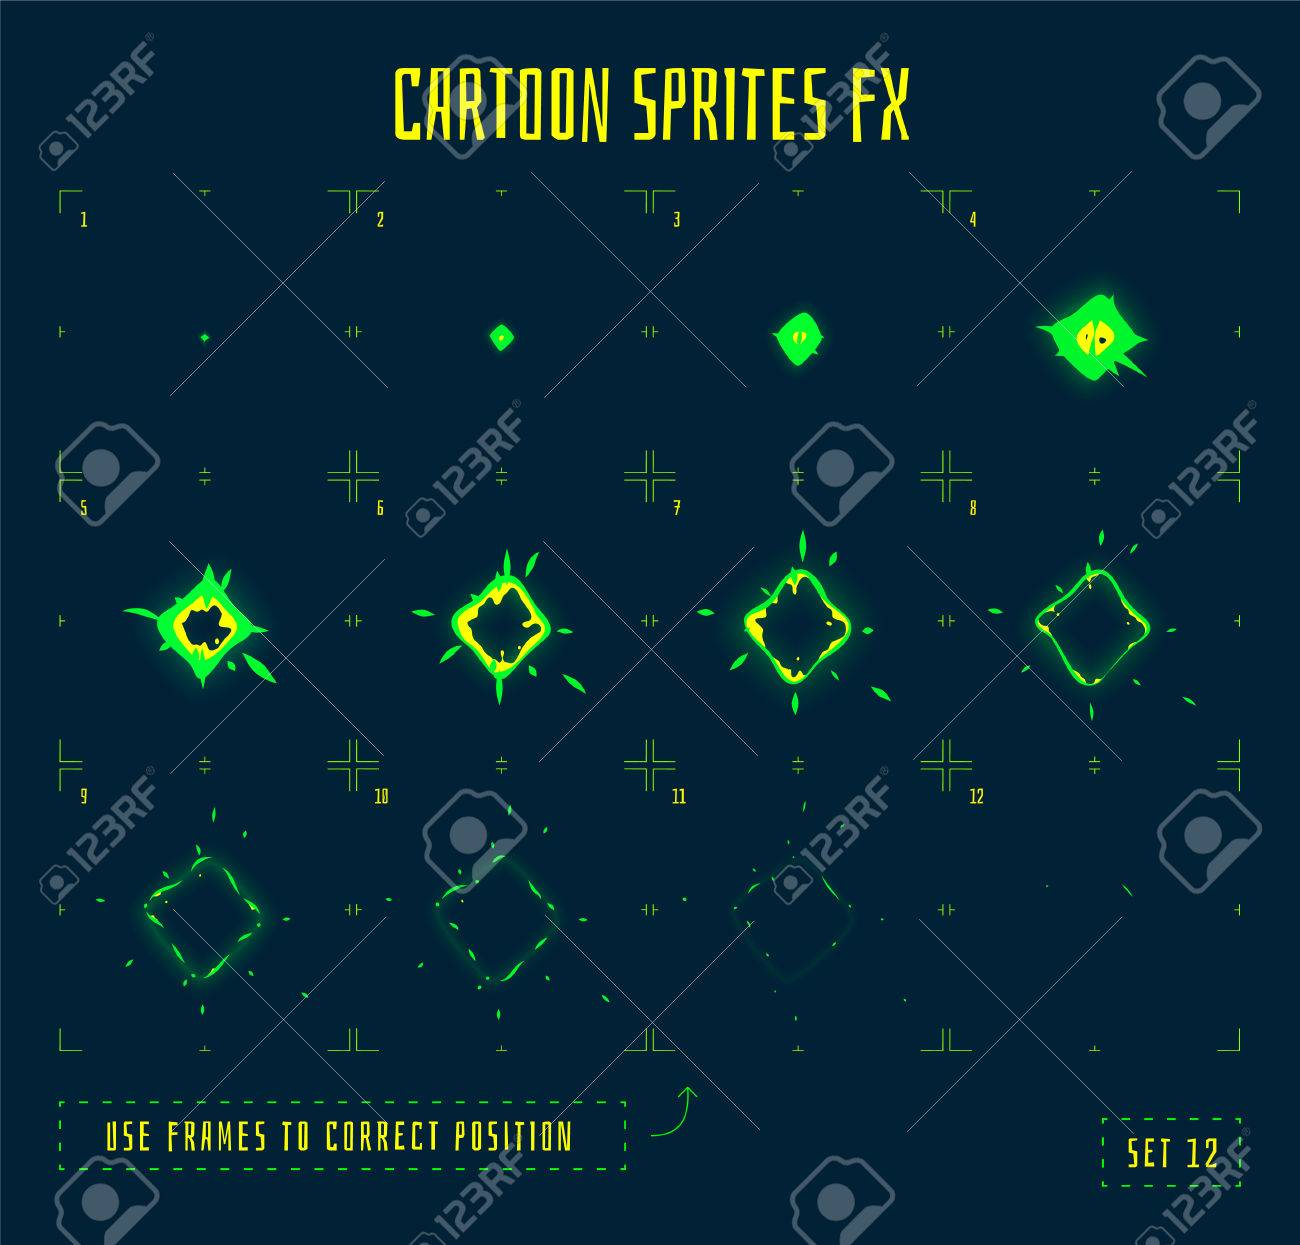 Energy explosion sprites or animation frames icons. Use in game development, mobile games or motion graphic. Vector illustration. - 58783164